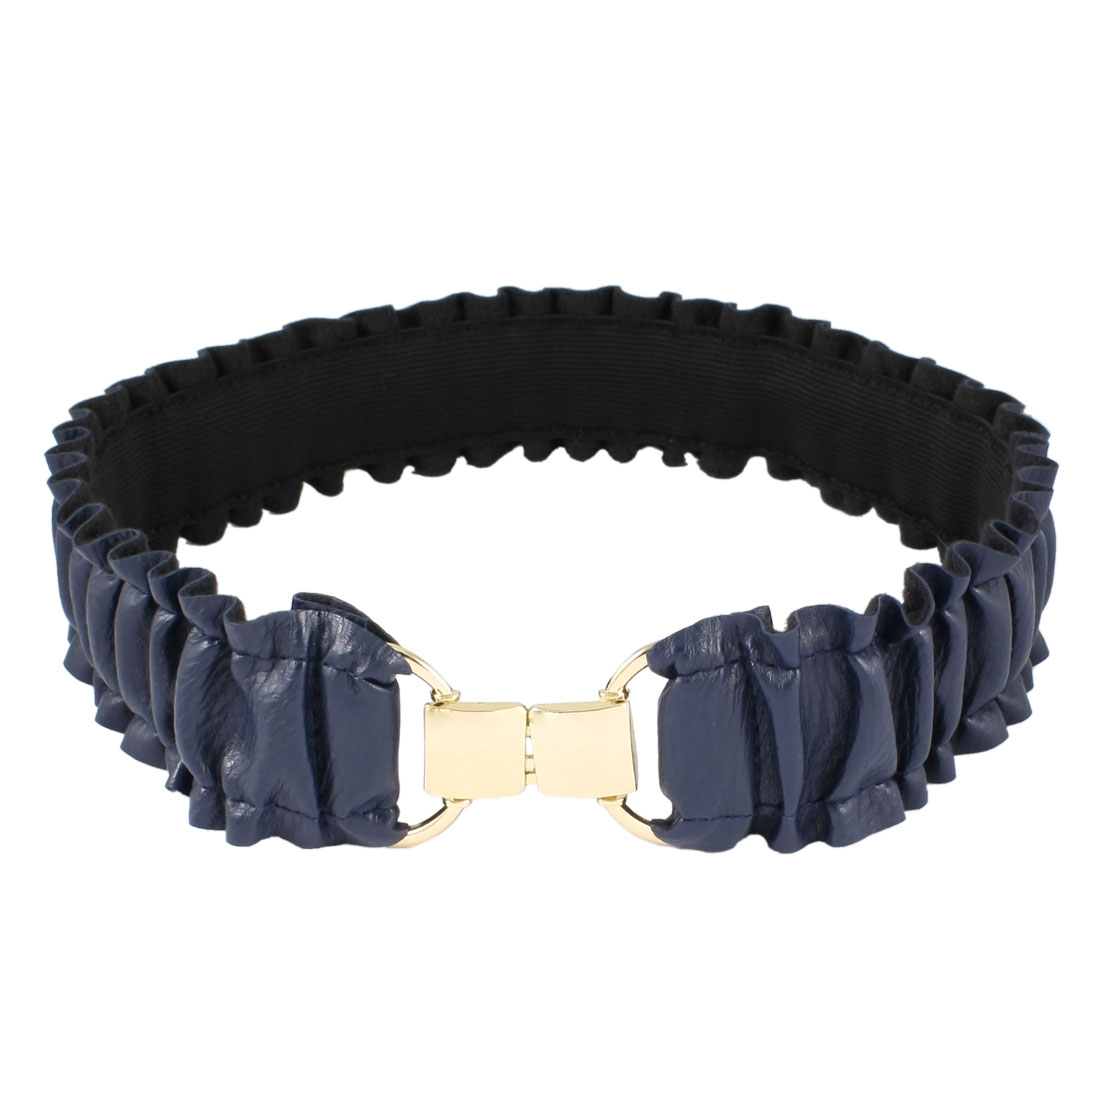 "Dark Blue Pleated Faux Leather Elastic Band Waist Belt 1.9"" Width for Women"